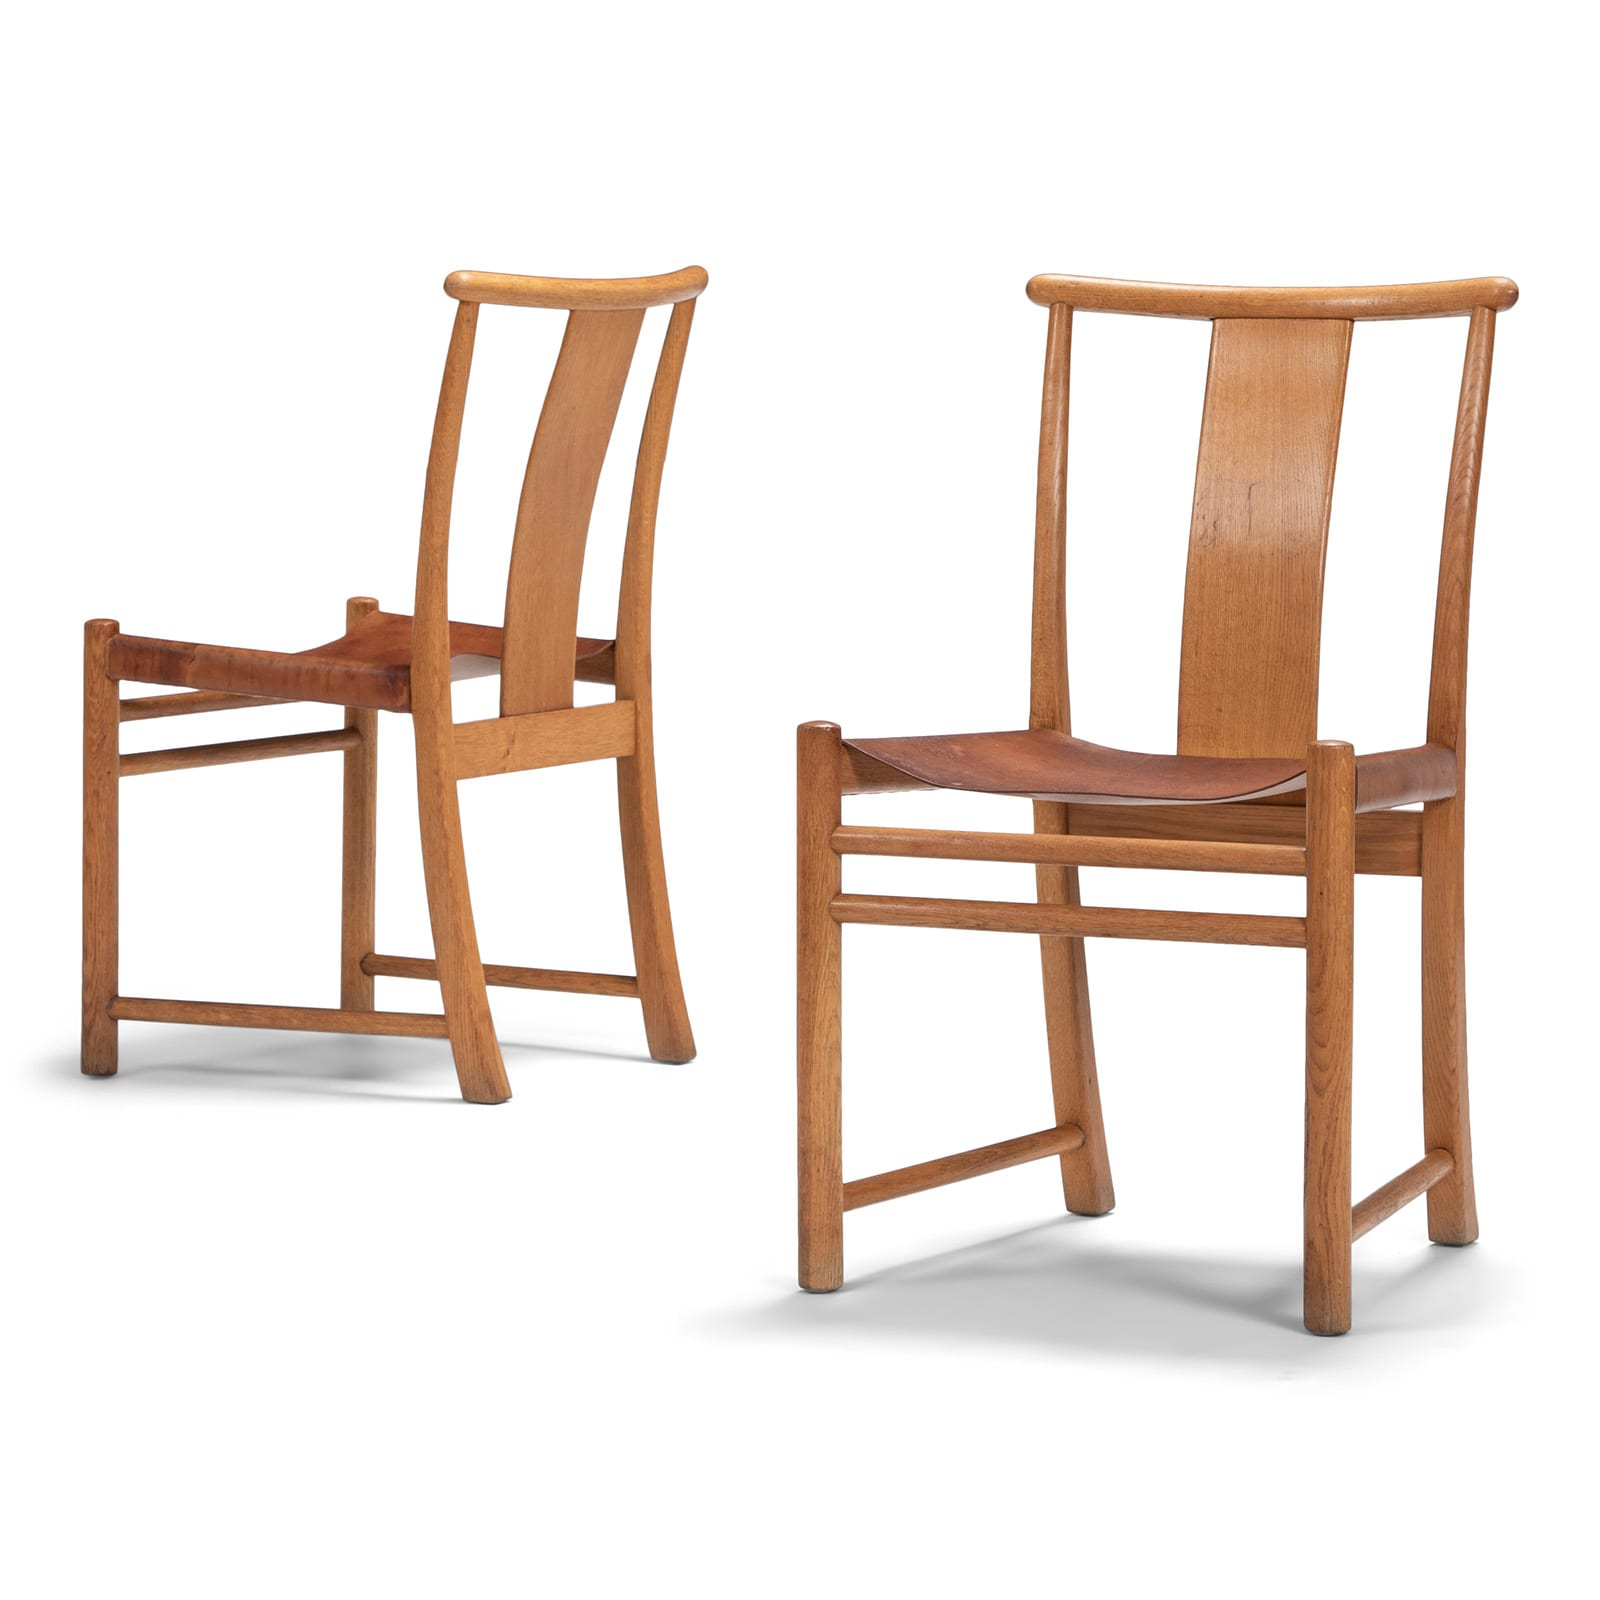 A set of Bellevue chairs